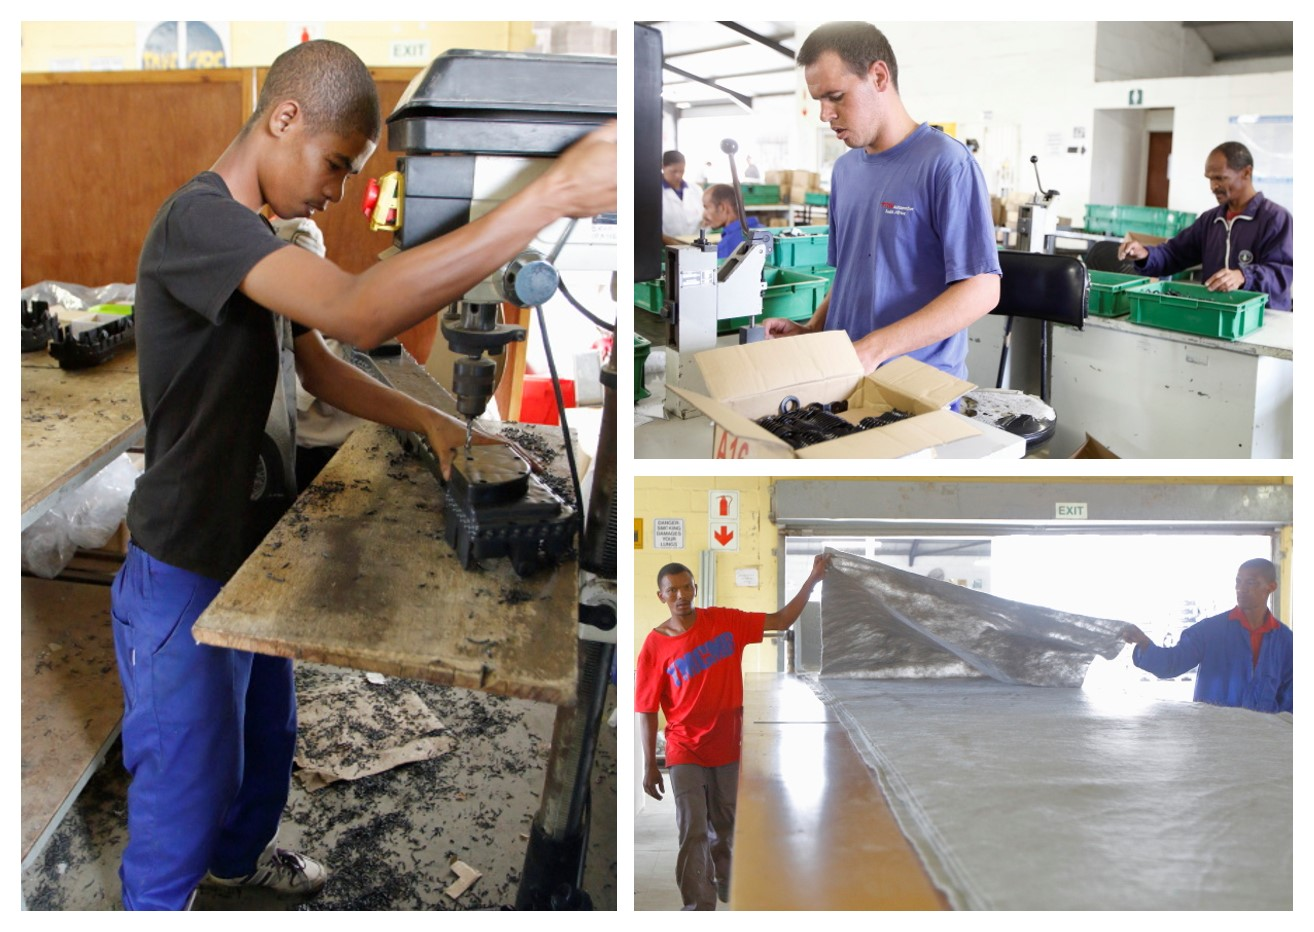 CREATING JOBS FOR PEOPLE WITH DISABILITIES THROUGH RECYCLING